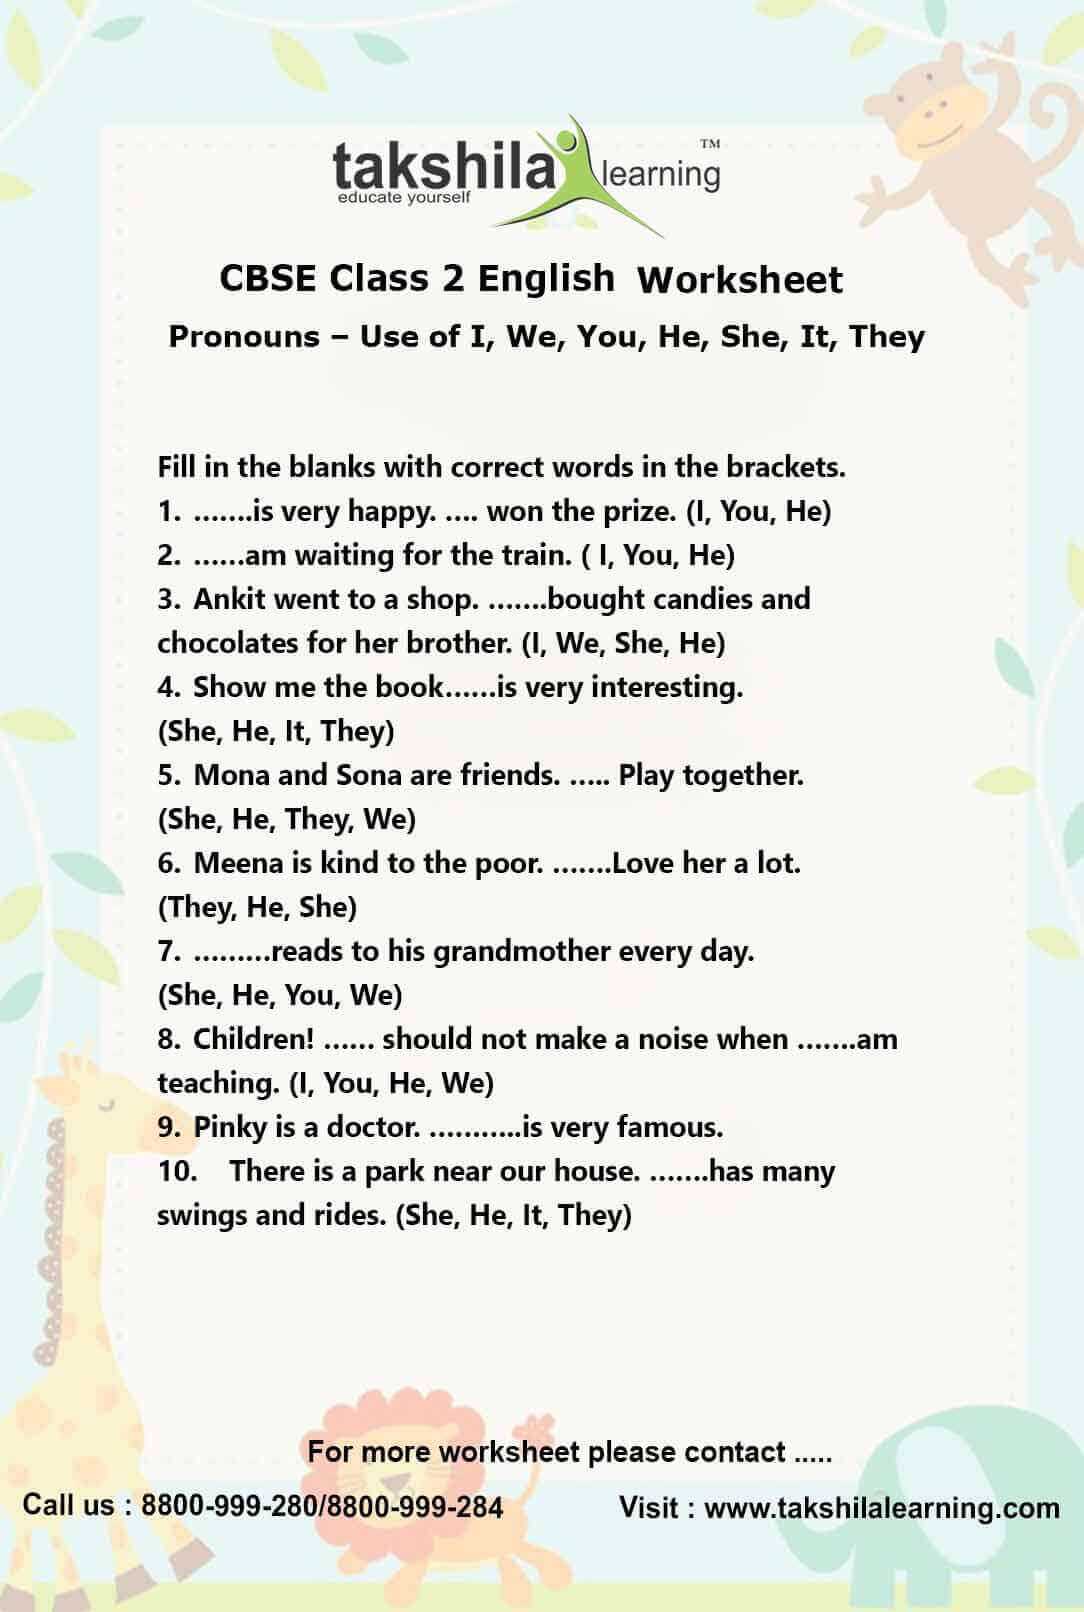 English Grammar Worksheet For Class 2 Cbse